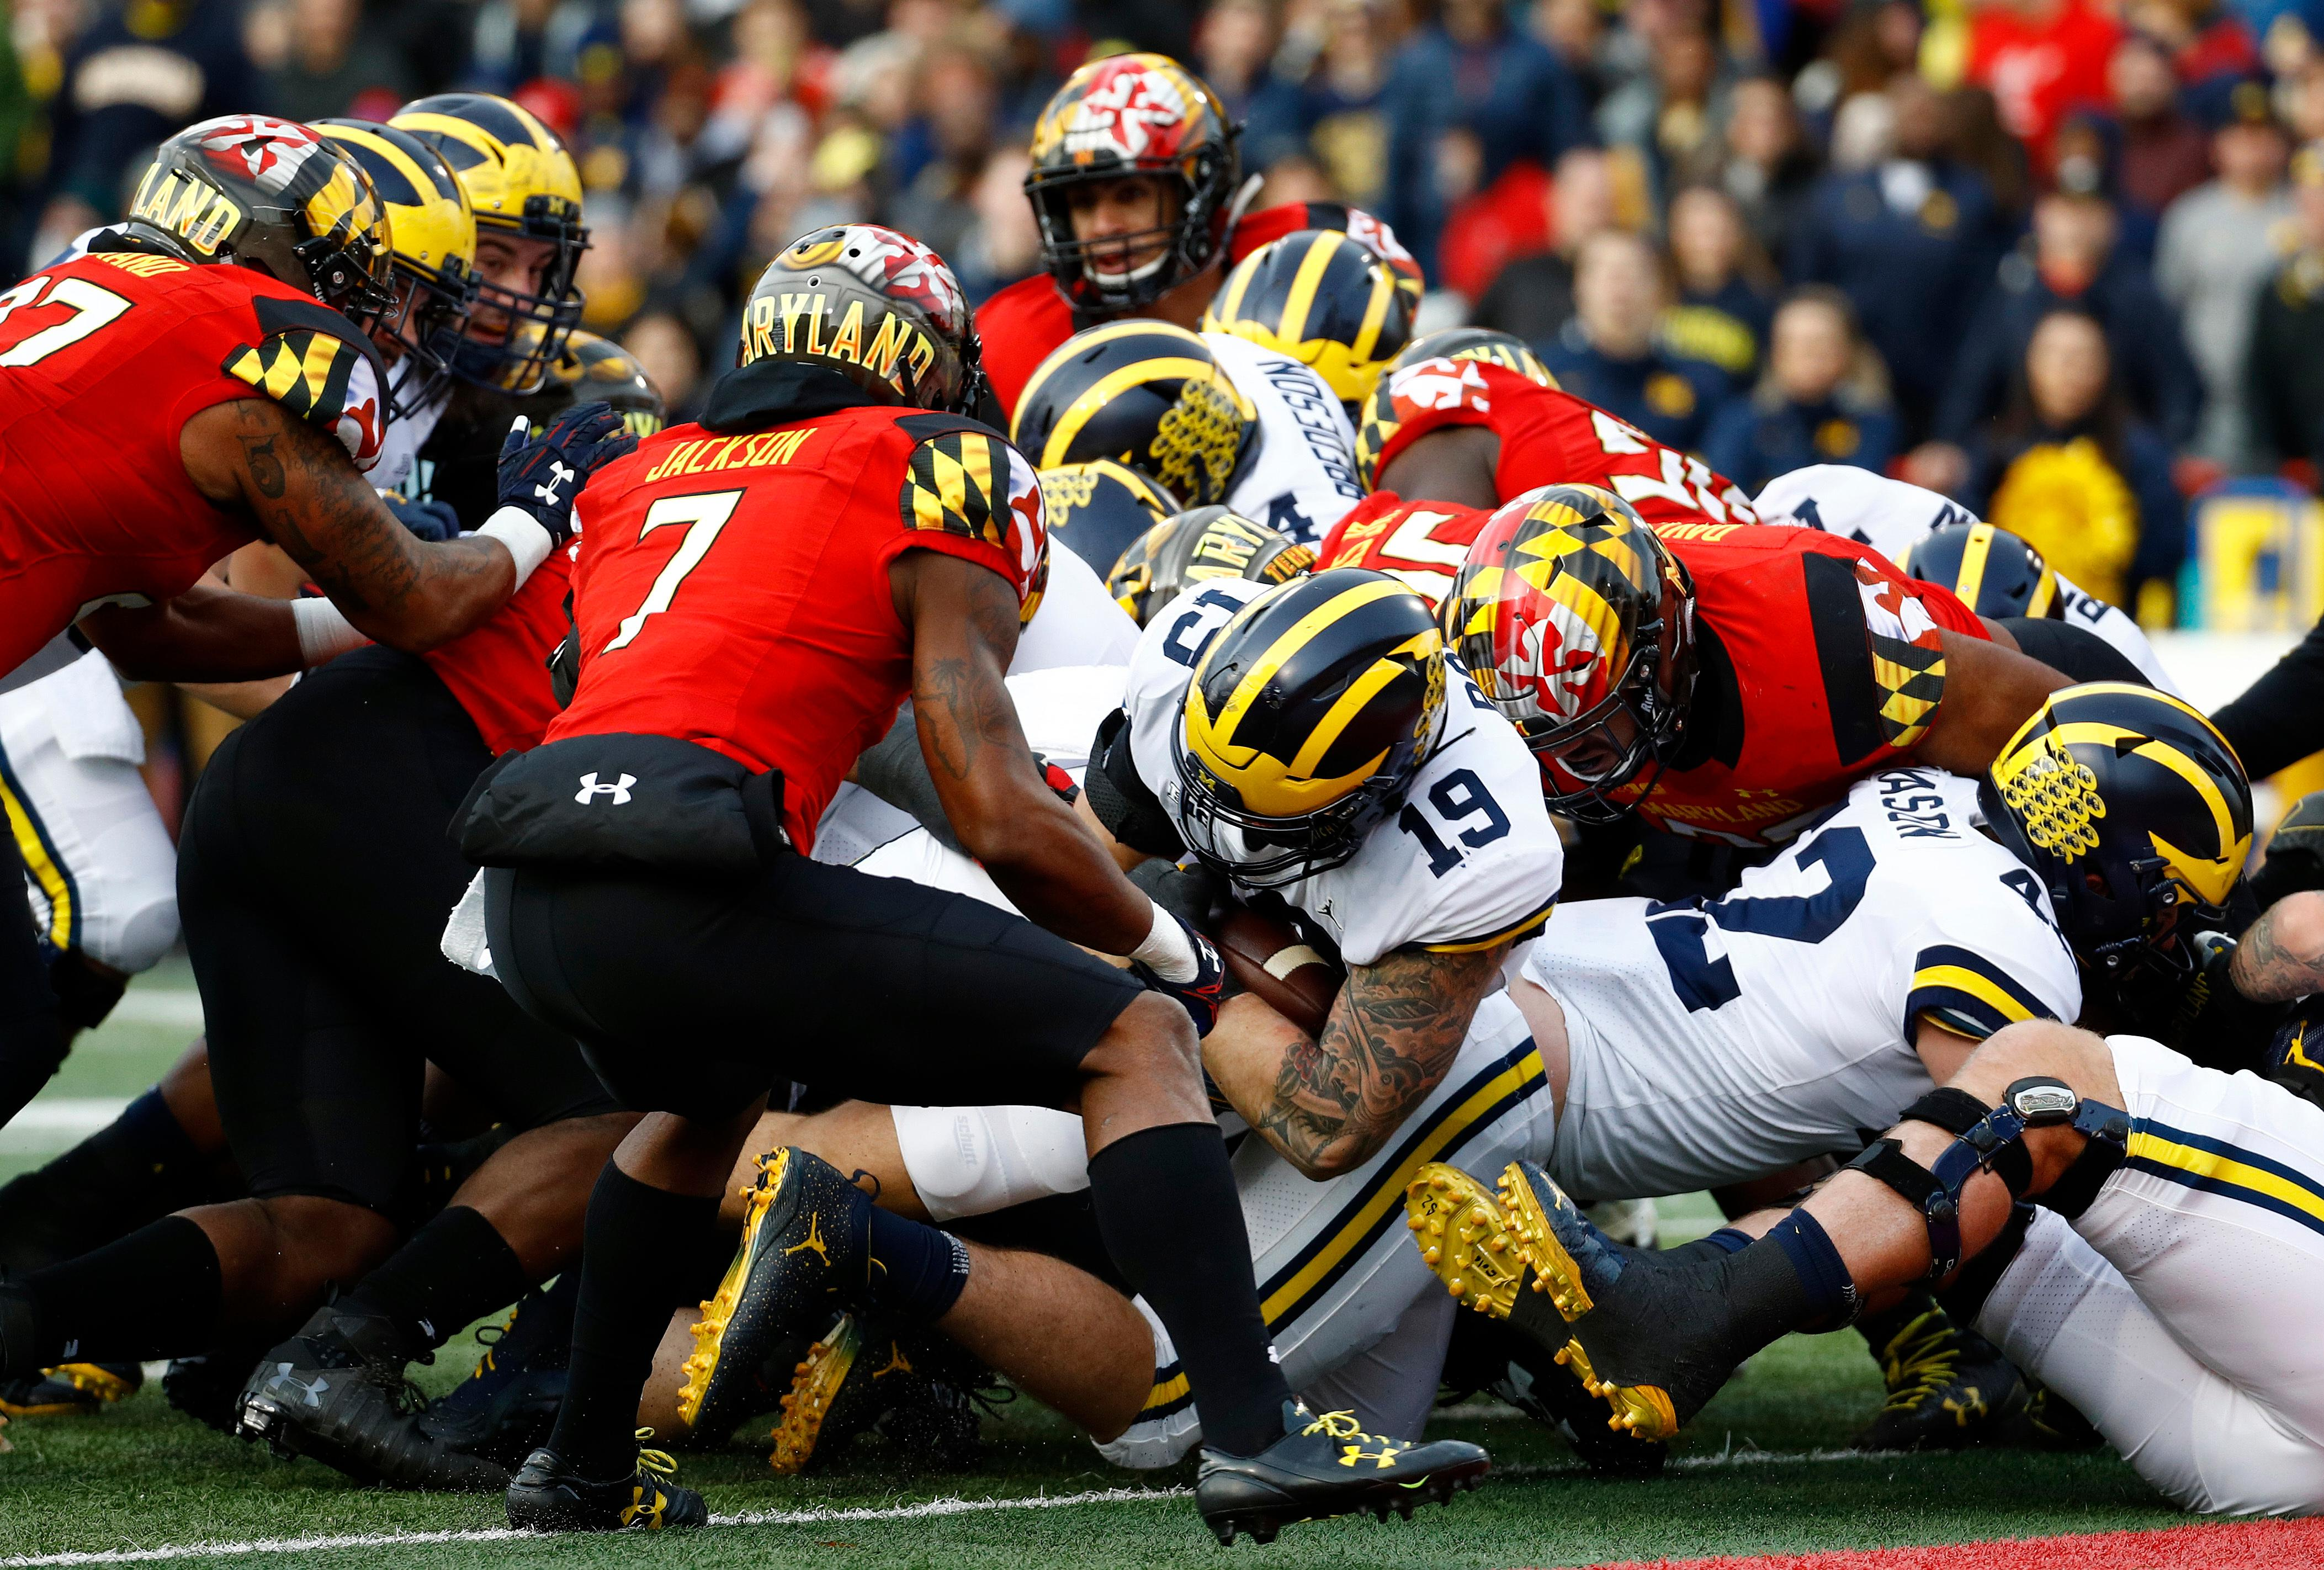 Michigan fullback Henry Poggi (19) falls into the end zone for a touchdown in the first half of an NCAA college football game against Maryland in College Park, Md., Saturday, Nov. 11, 2017. (AP Photo/Patrick Semansky)